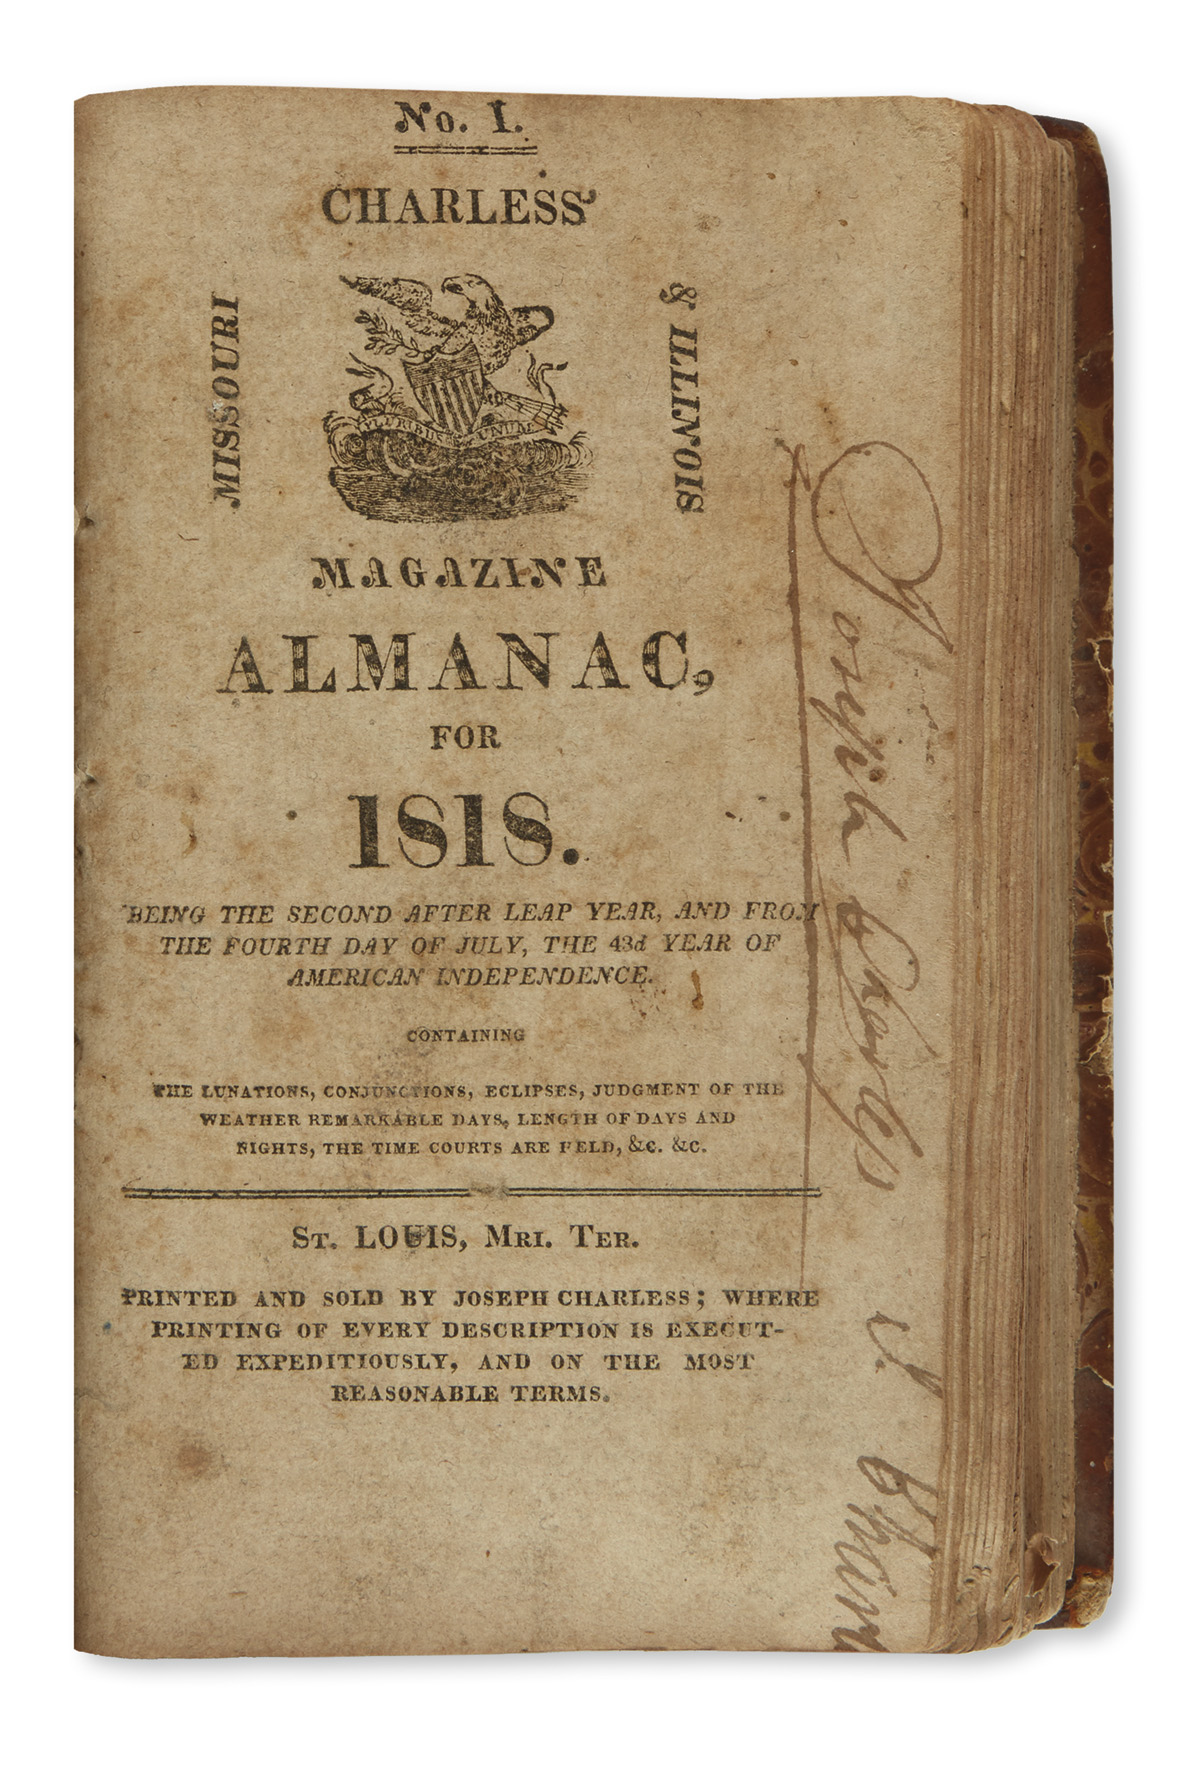 (ALMANACS)-Volume-of-early-St-Louis-and-Pittsburgh-almanacs-